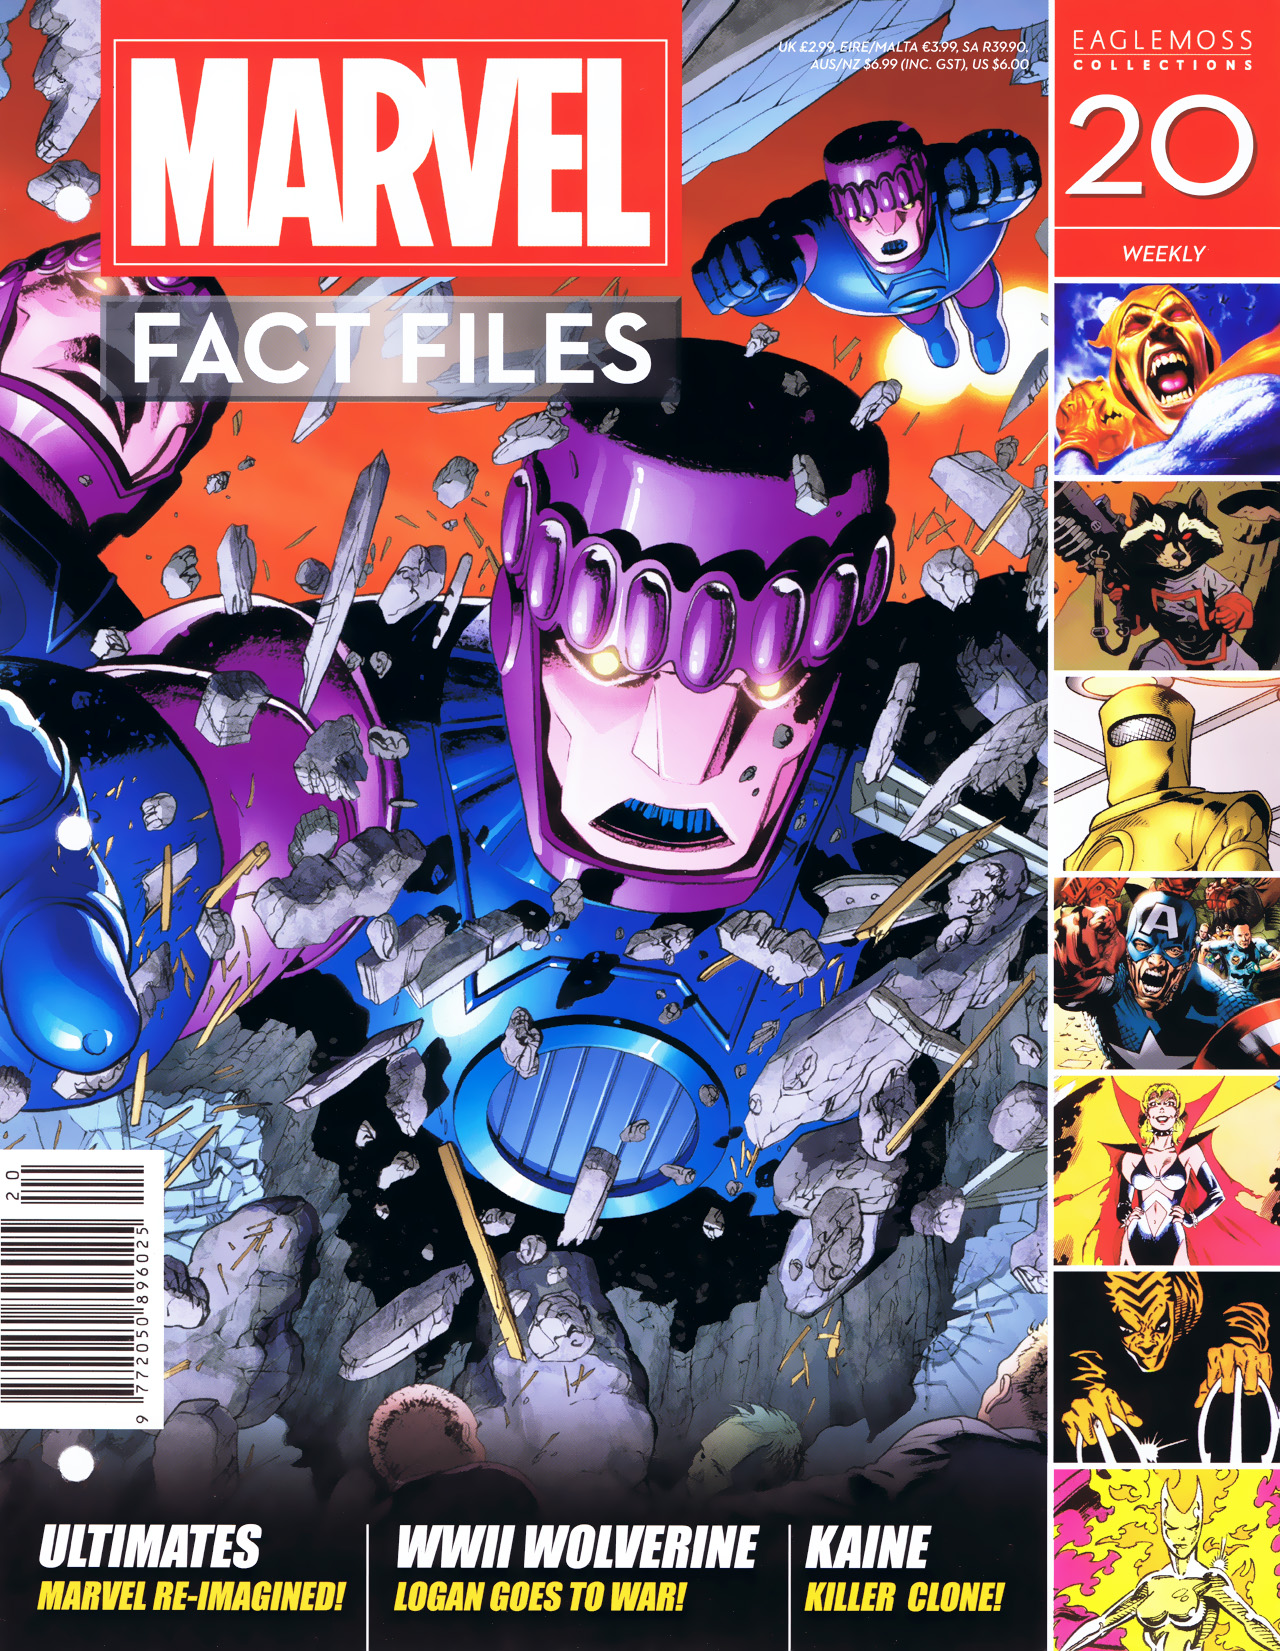 Marvel Fact Files 20 Page 1